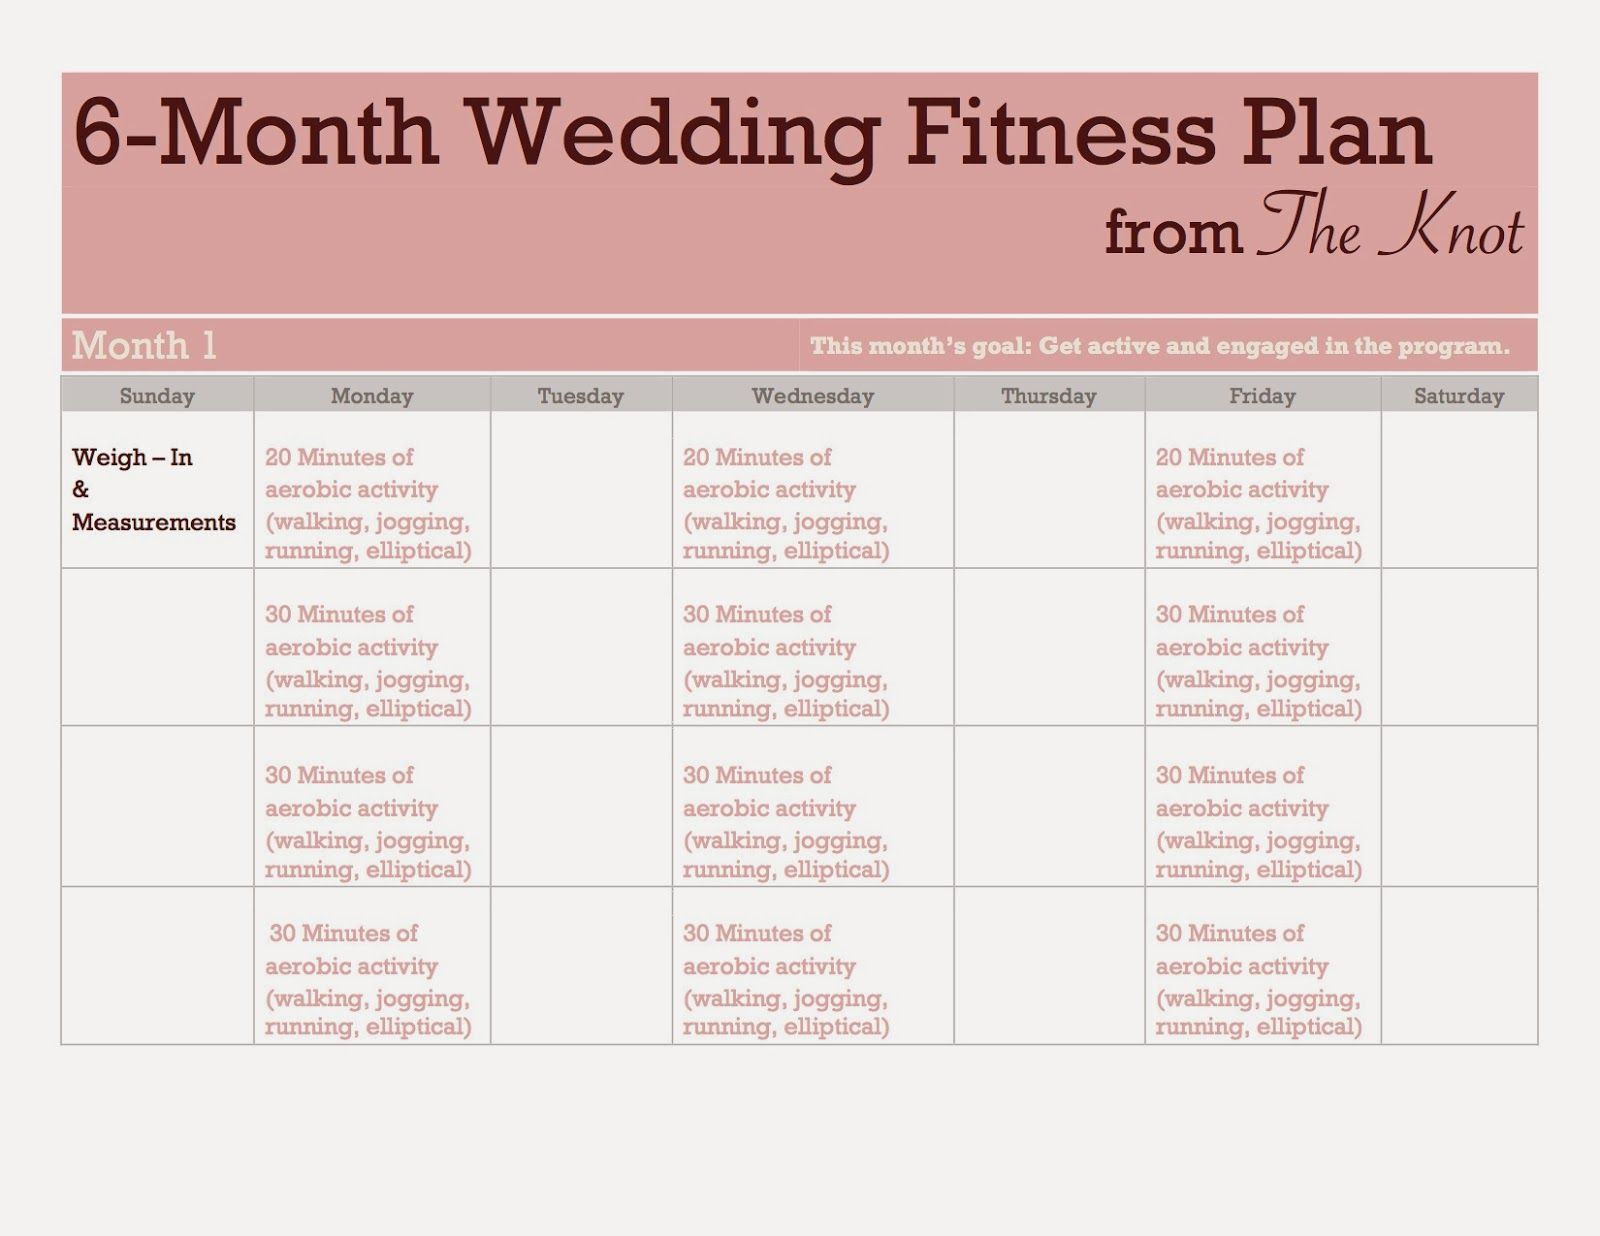 The Knot S 6 Month Wedding Fitness Plan I Made It Into An Easy To Read Calendar For The Blog Wedding Workout Plan Wedding Workout Workout Plan